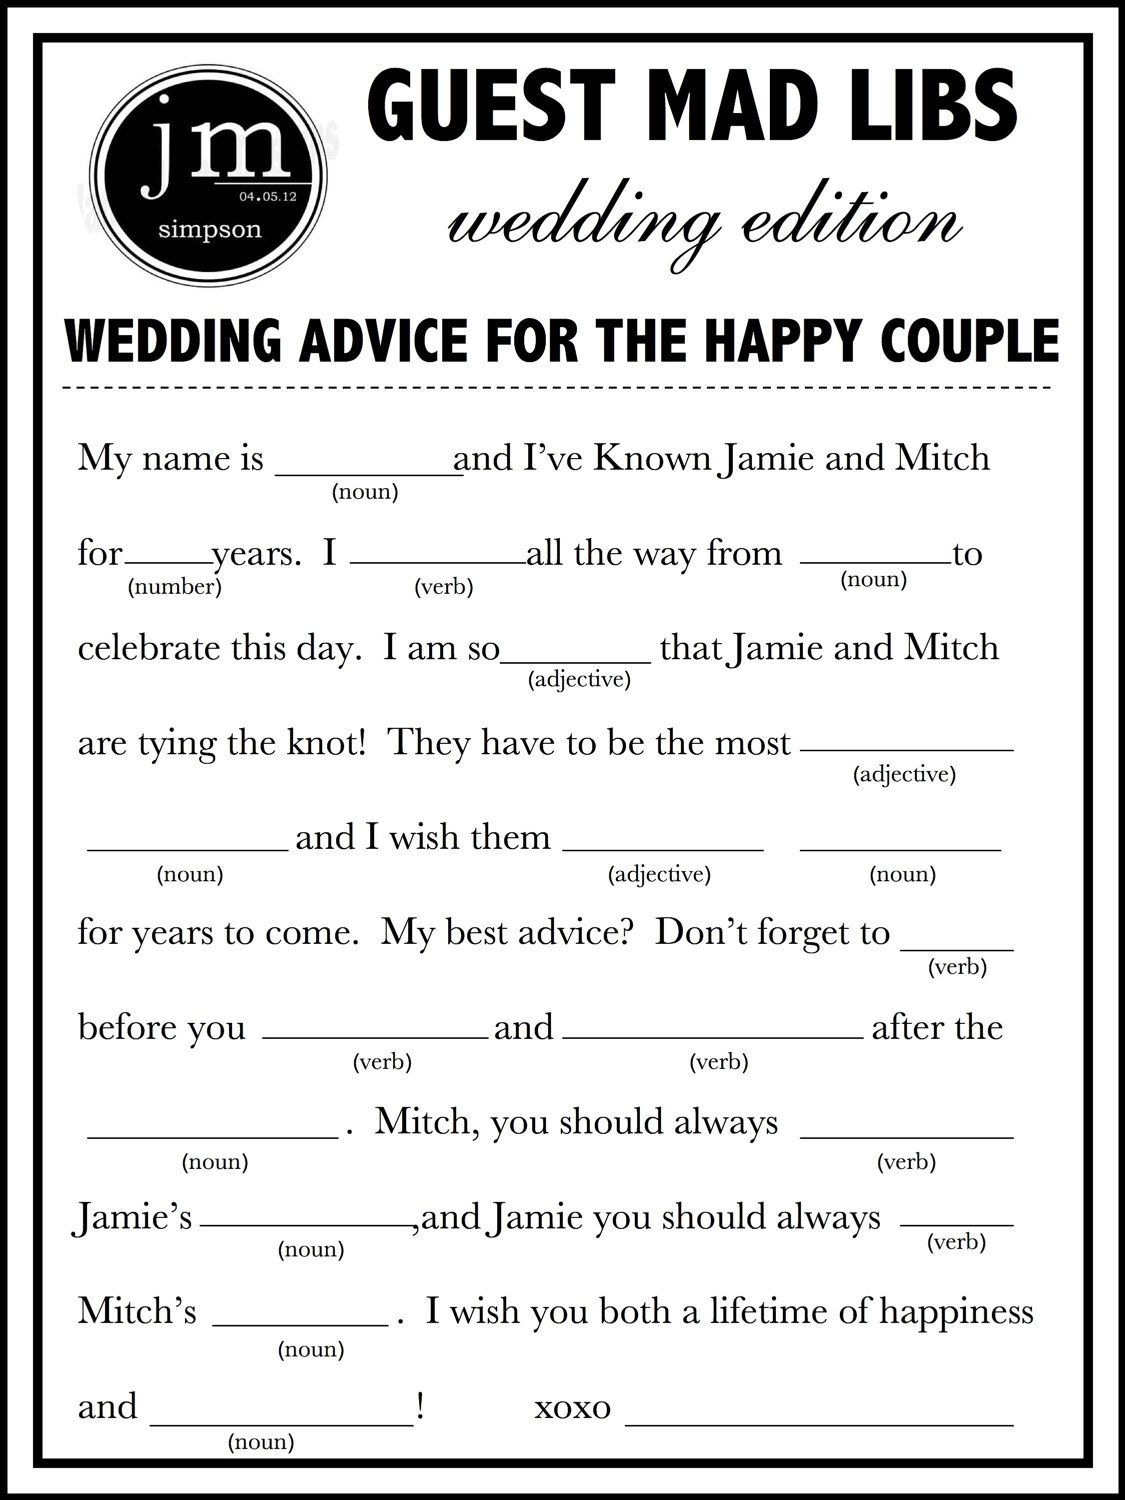 Printable Wedding Mad Lib A Fun Guest Book By